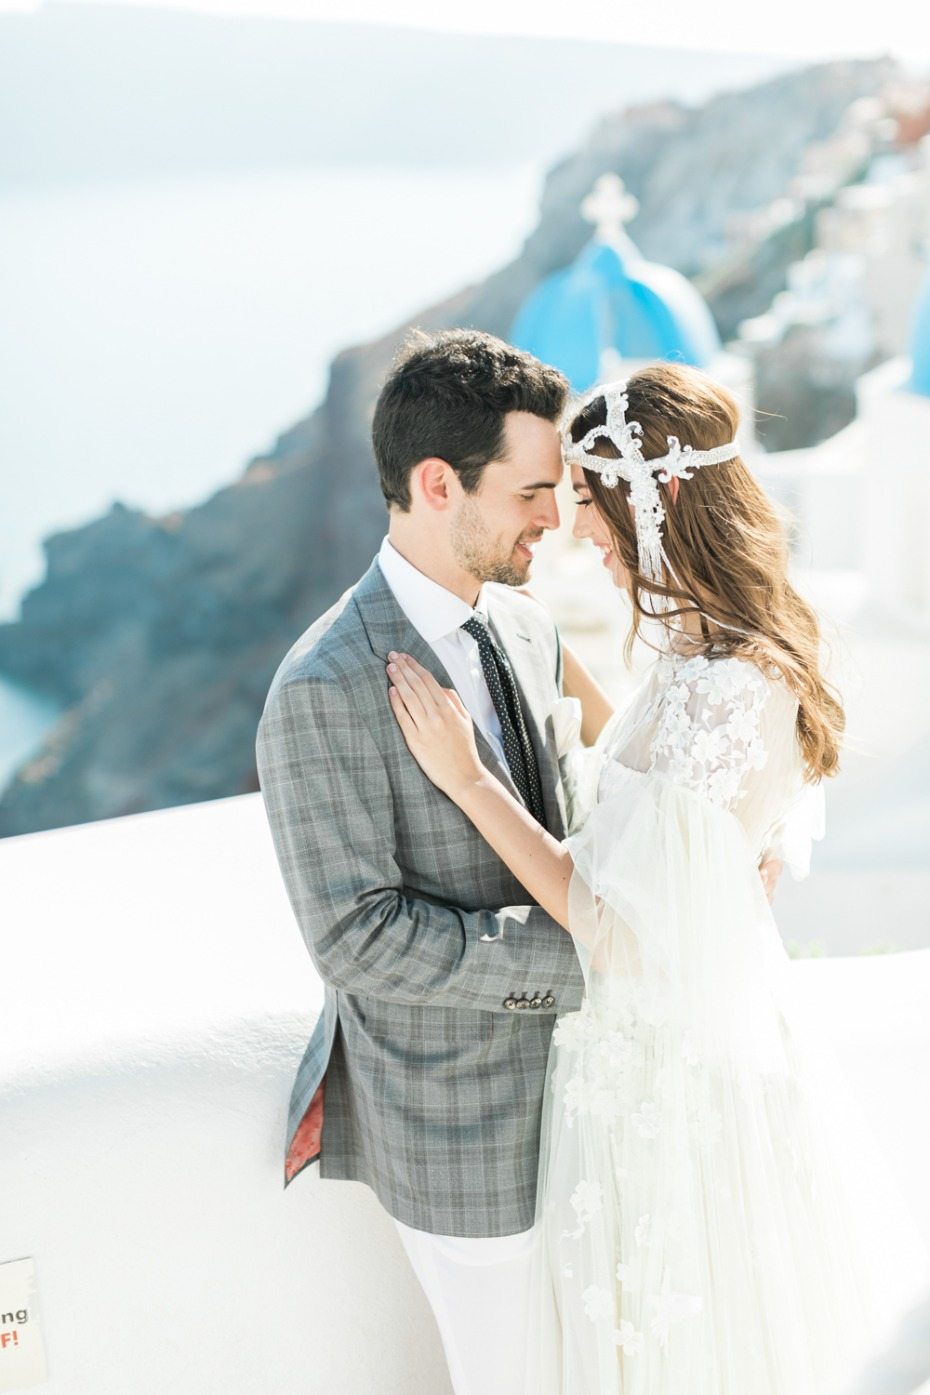 Gorgeous wedding ideas from Santorini